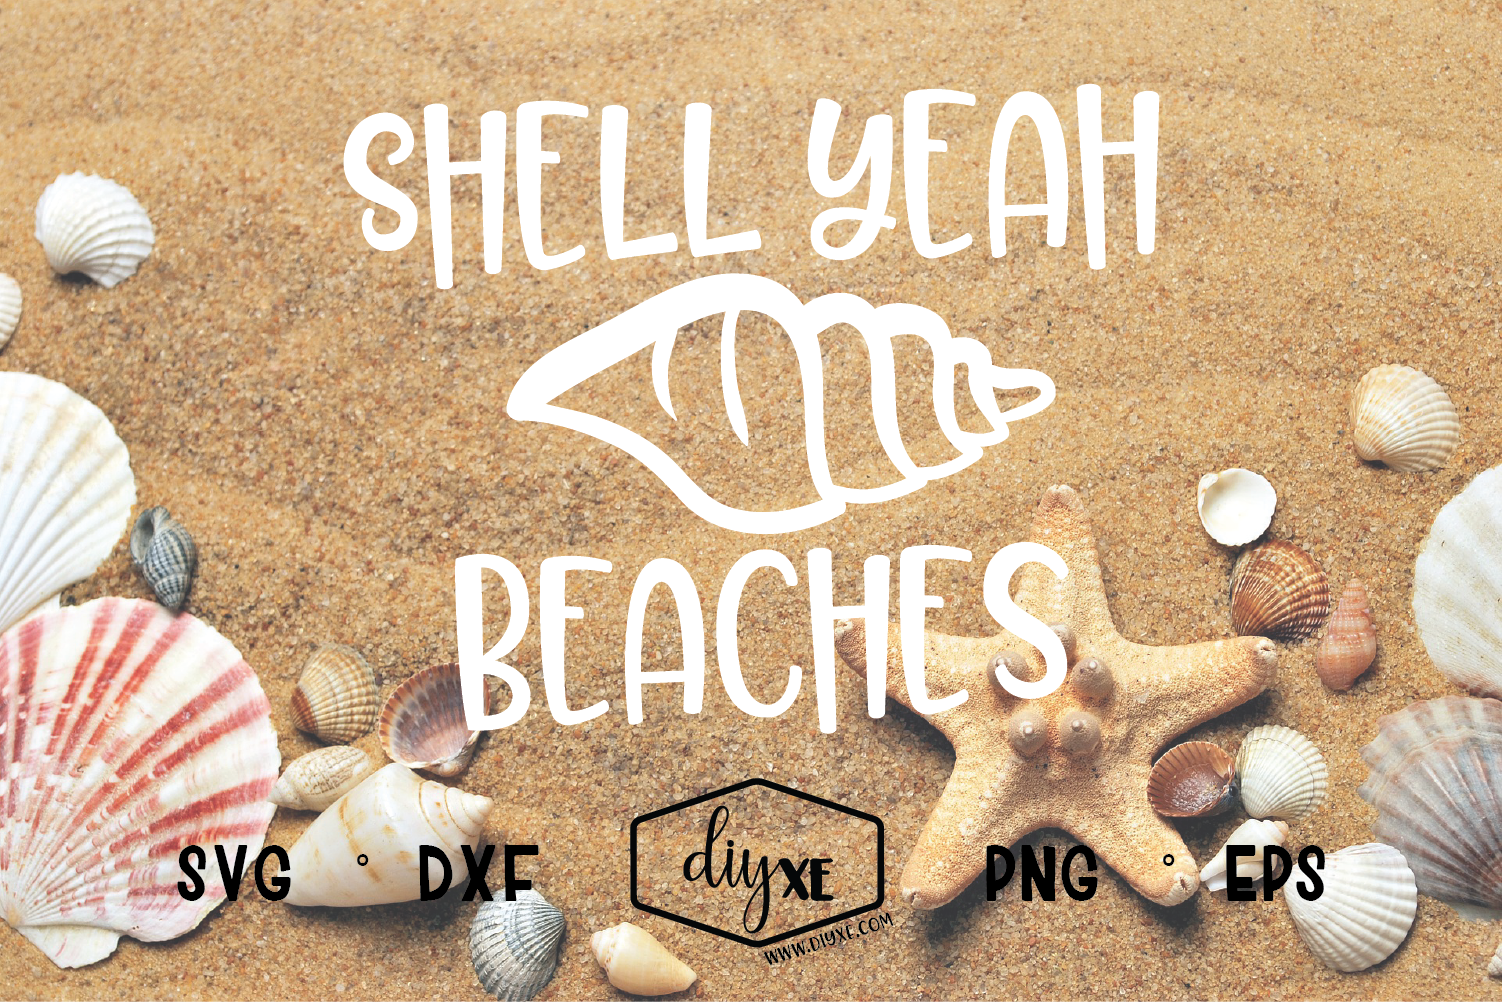 Download Free Shell Yeah Beaches Graphic By Sheryl Holst Creative Fabrica for Cricut Explore, Silhouette and other cutting machines.